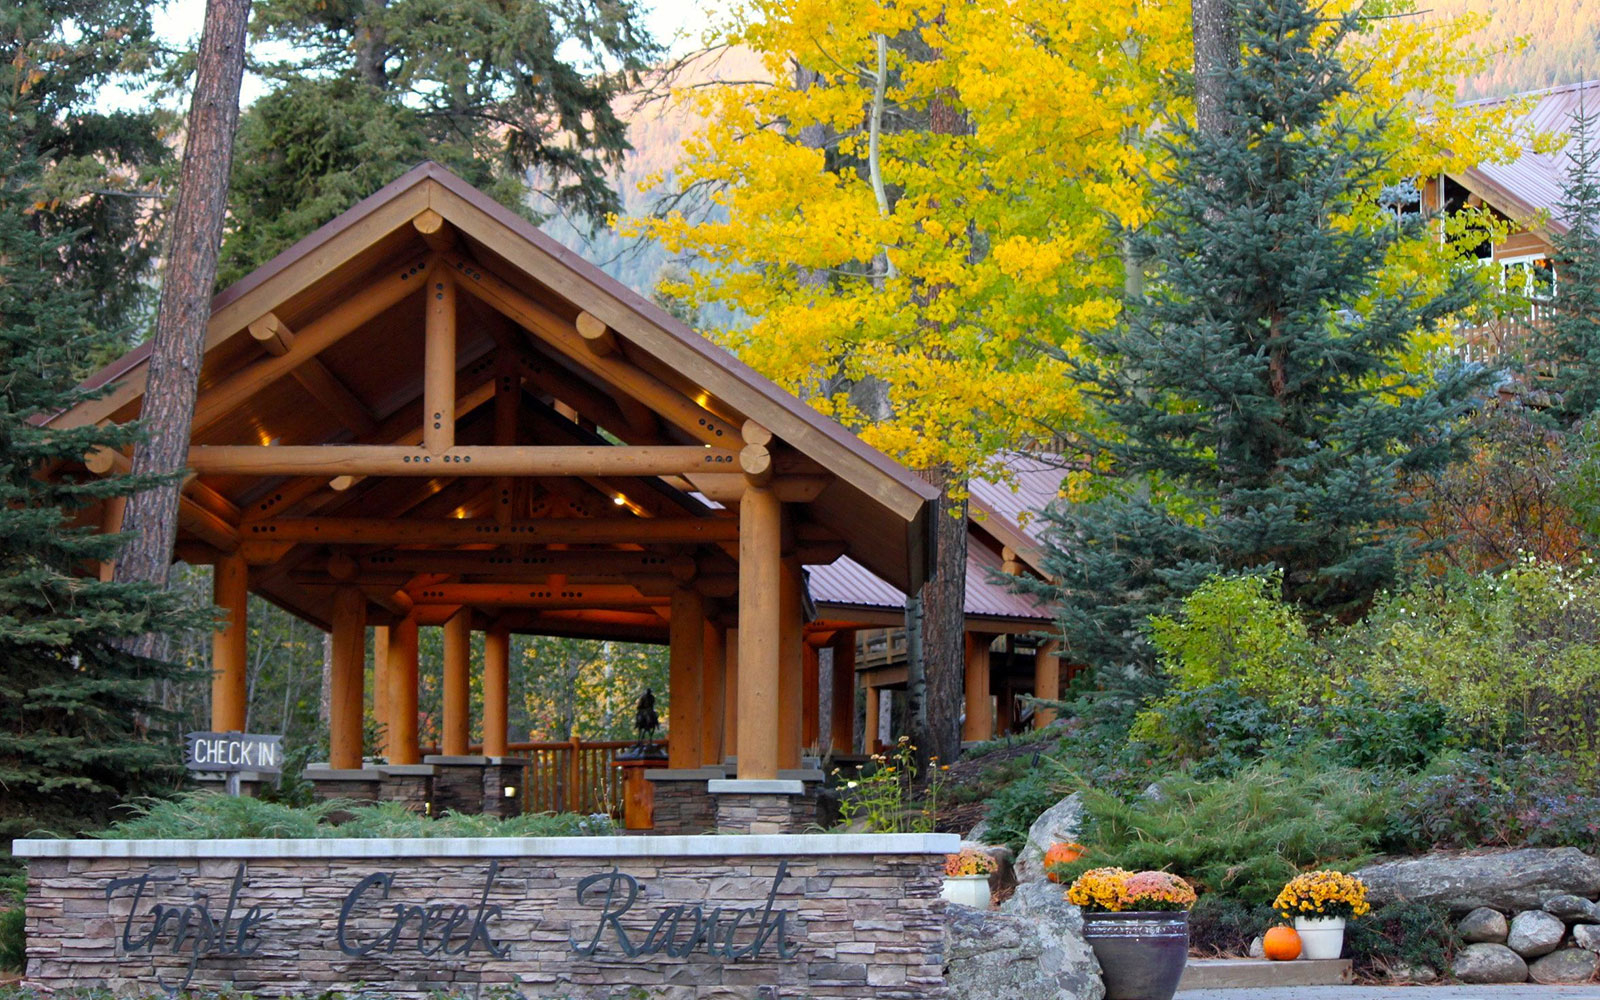 201409-w-americas-best-hotels-for-fall-colors-triple-creek-ranch